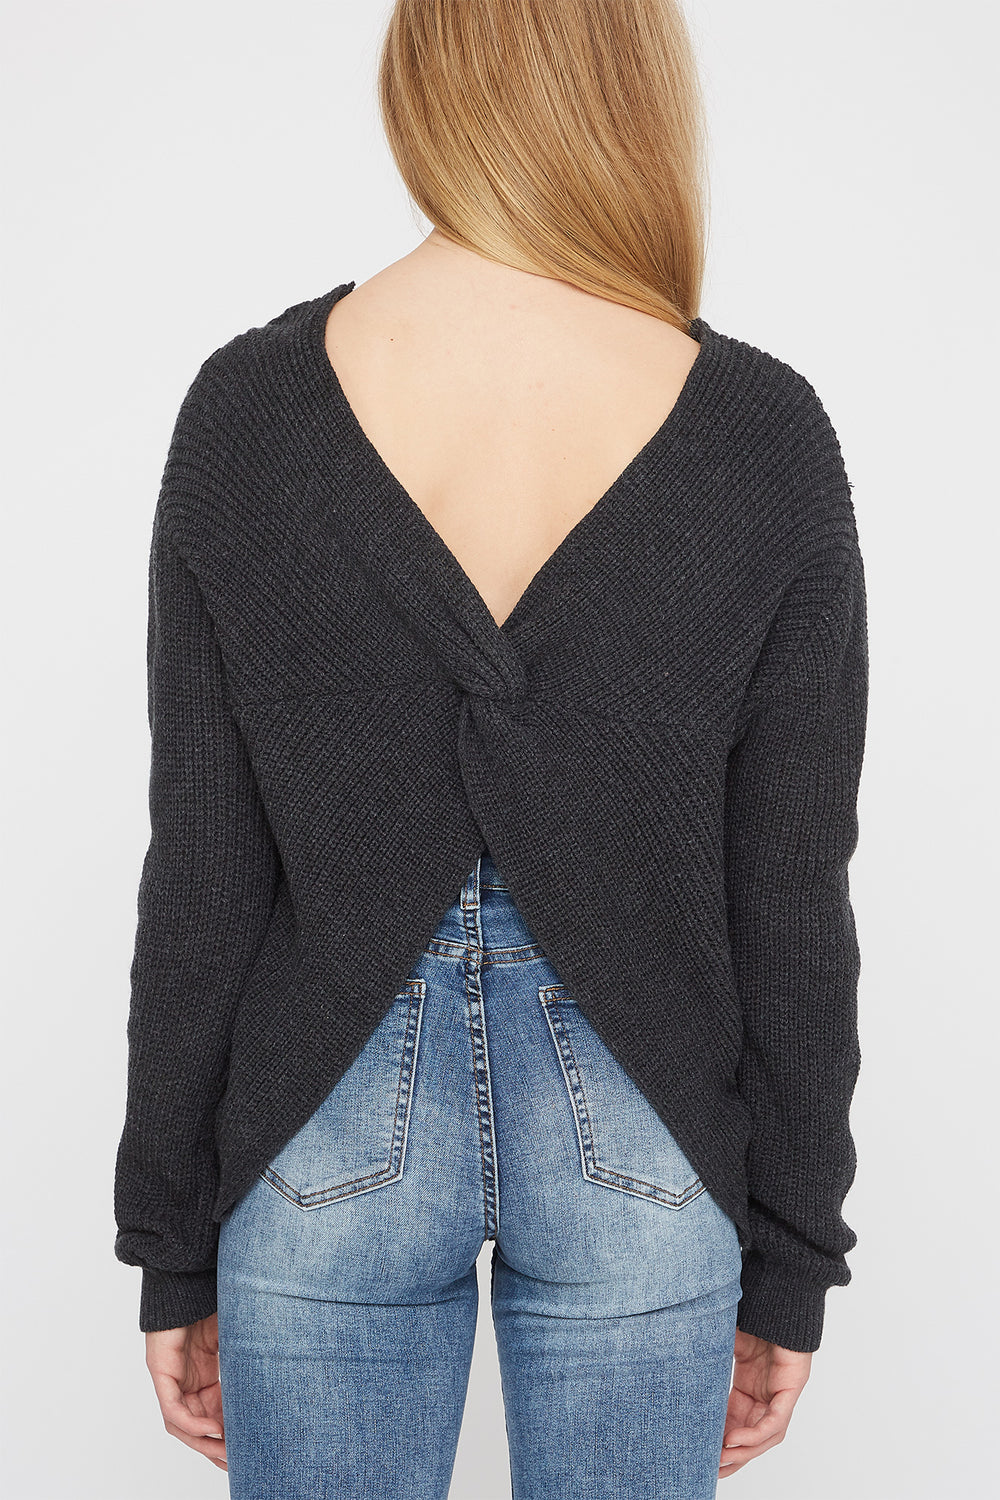 Zoo York Womens Knit Back Knot Sweater Charcoal